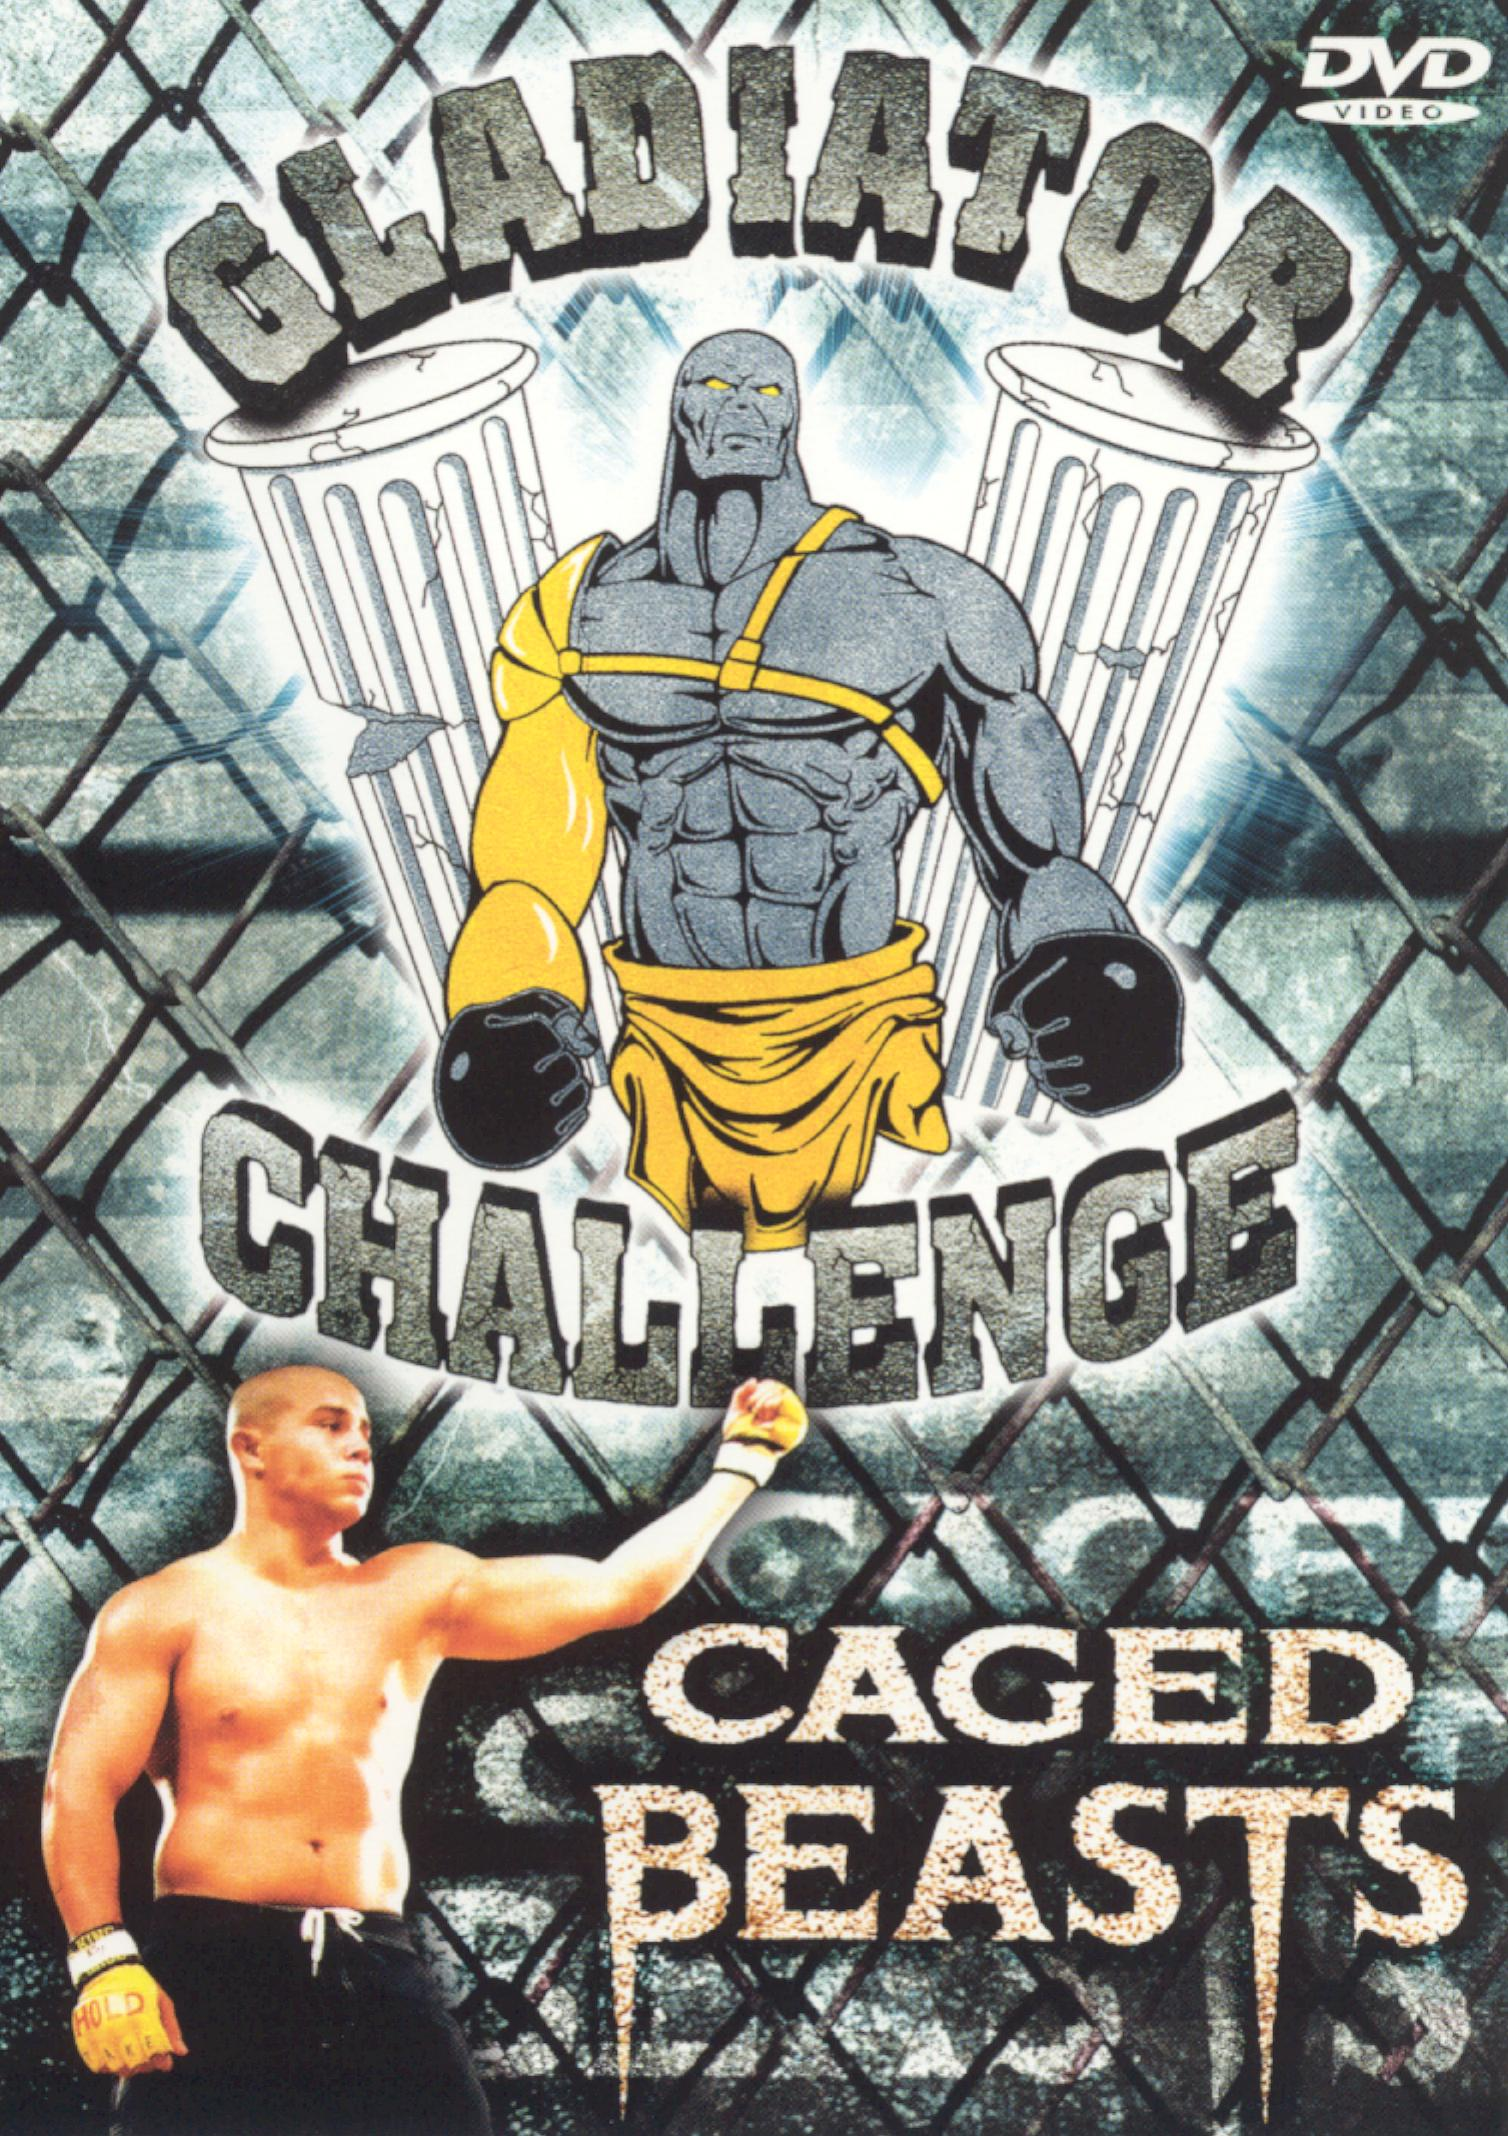 Gladiator Challenge: Caged Beasts